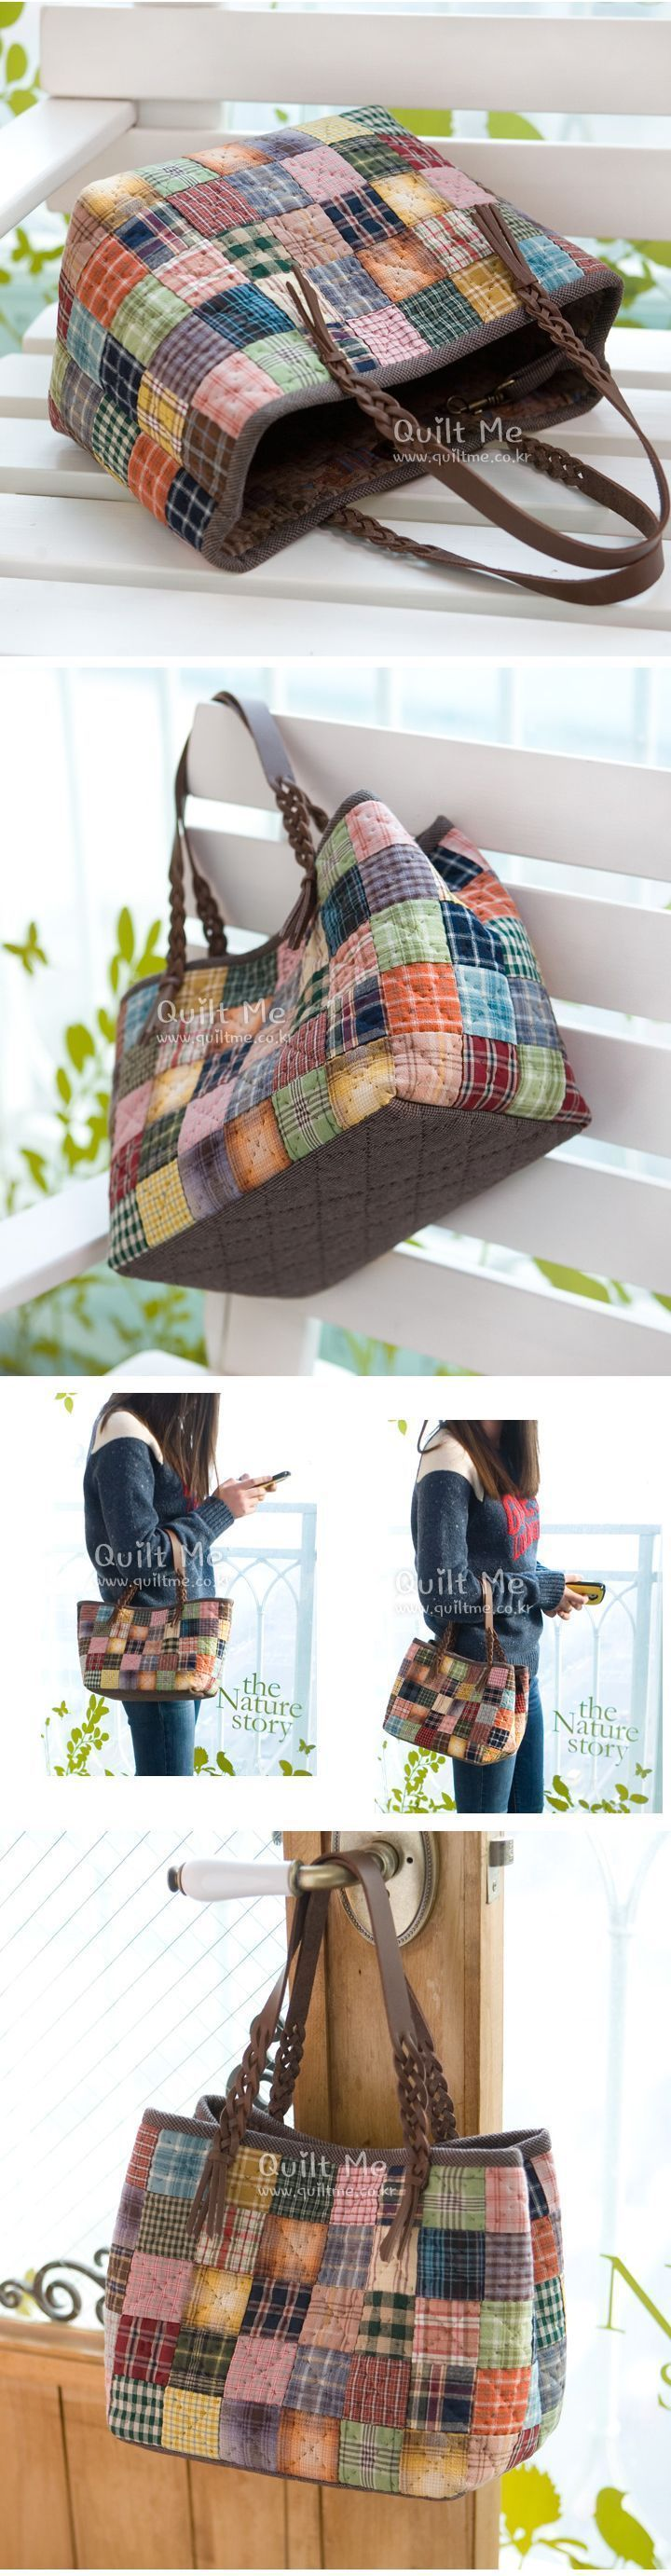 quilted patchwork hand bag purse – purse bag, chan… – #amazon #bag #chan #Hand… – Rosi